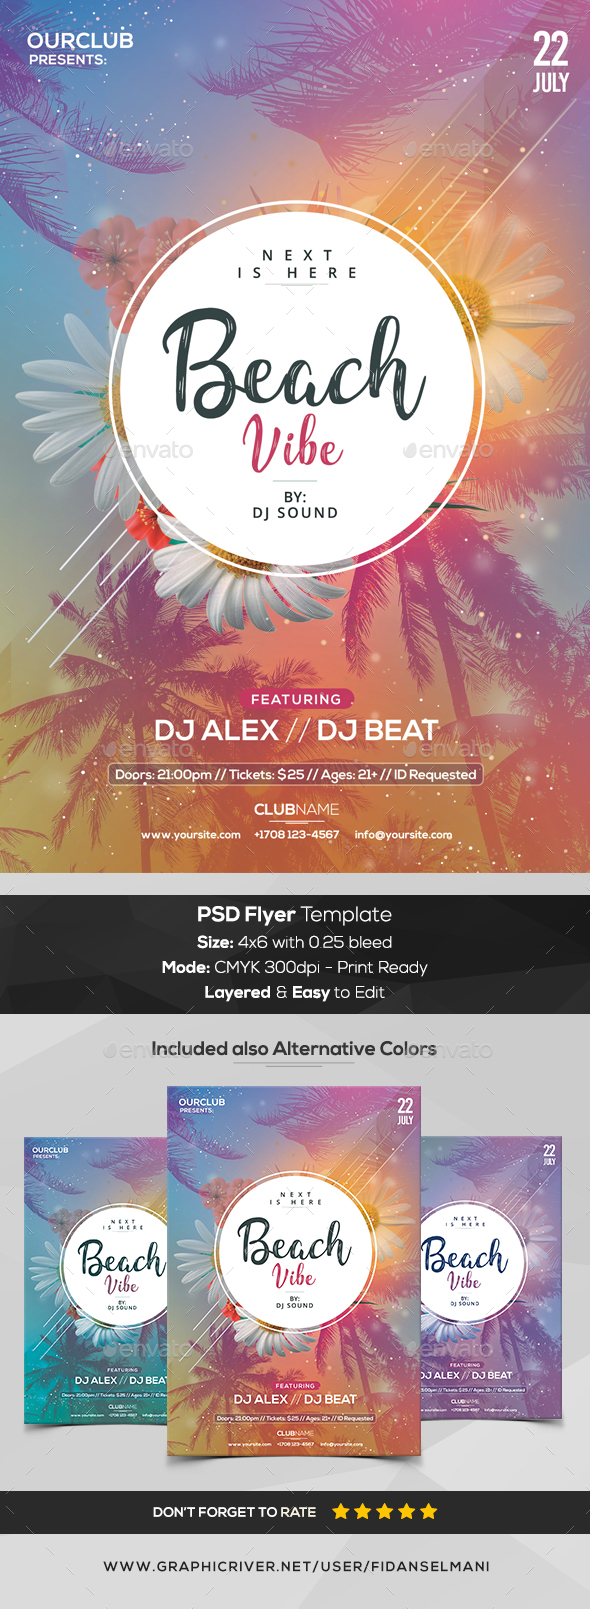 Beach Vibe - PSD Flyer Template - Events Flyers